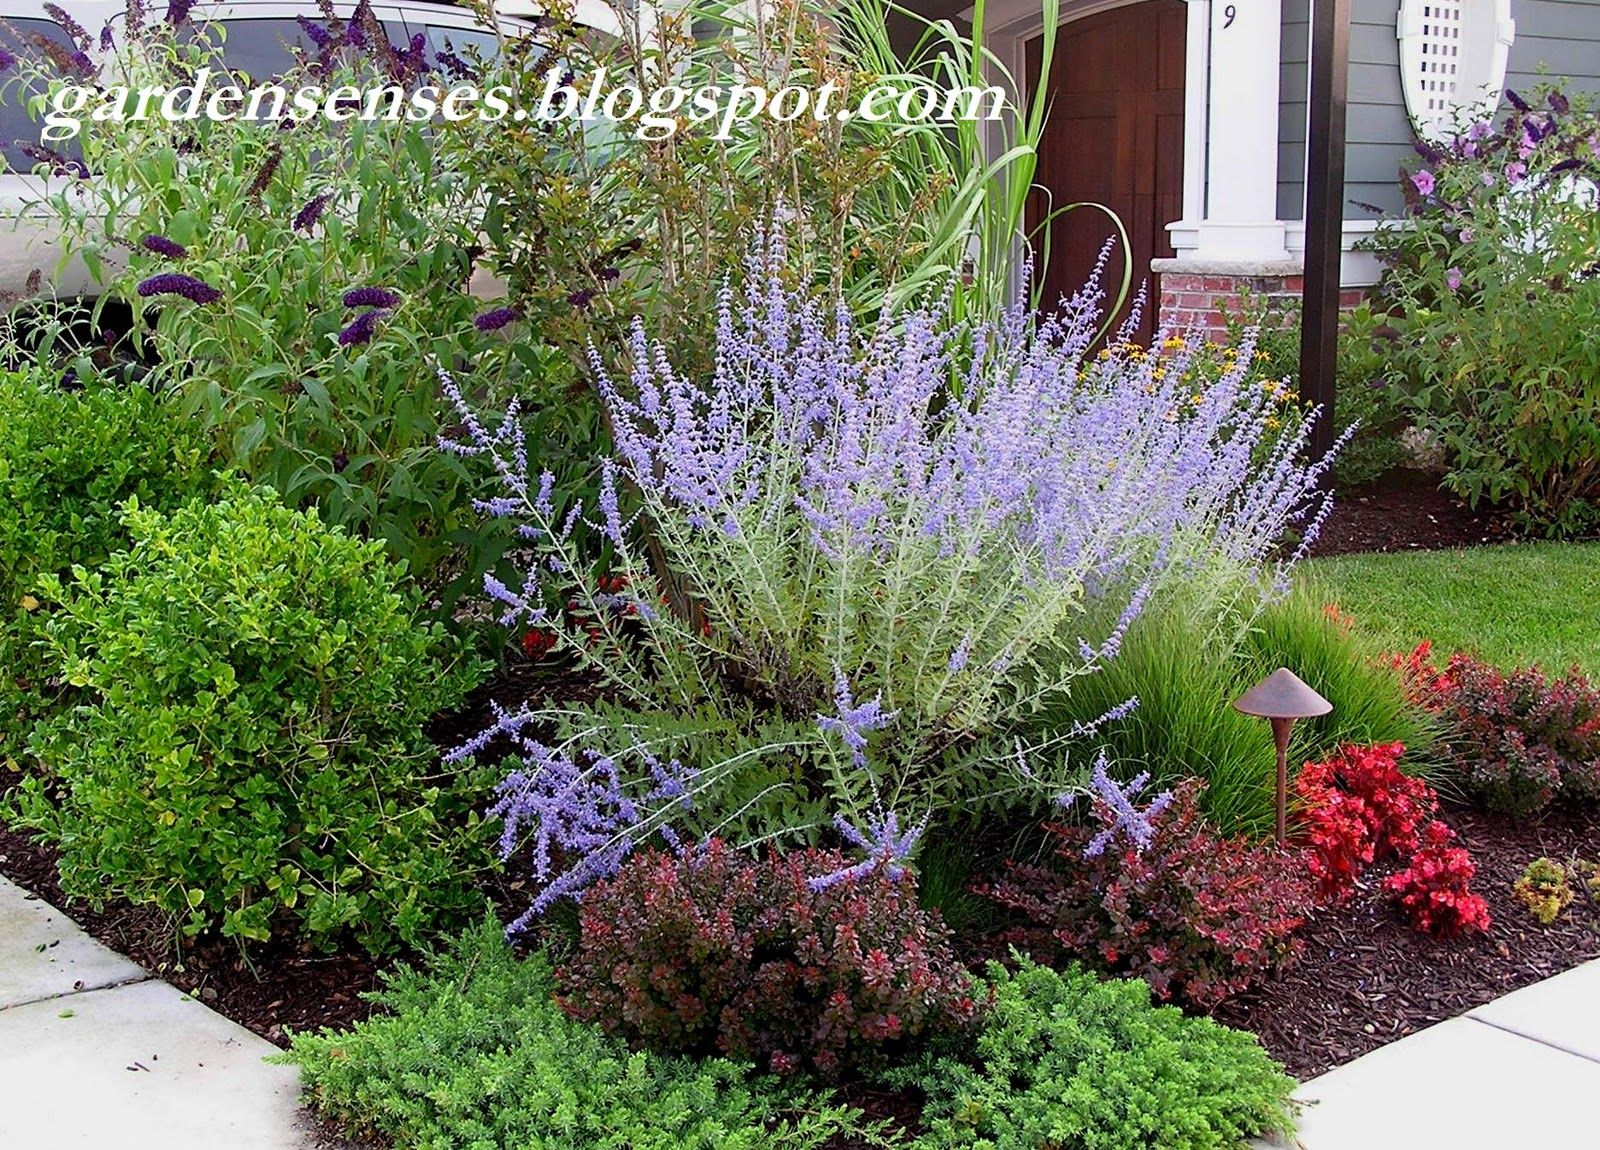 Dwarf barberry bushes easy care garden with russian sage for Easy to care for garden designs